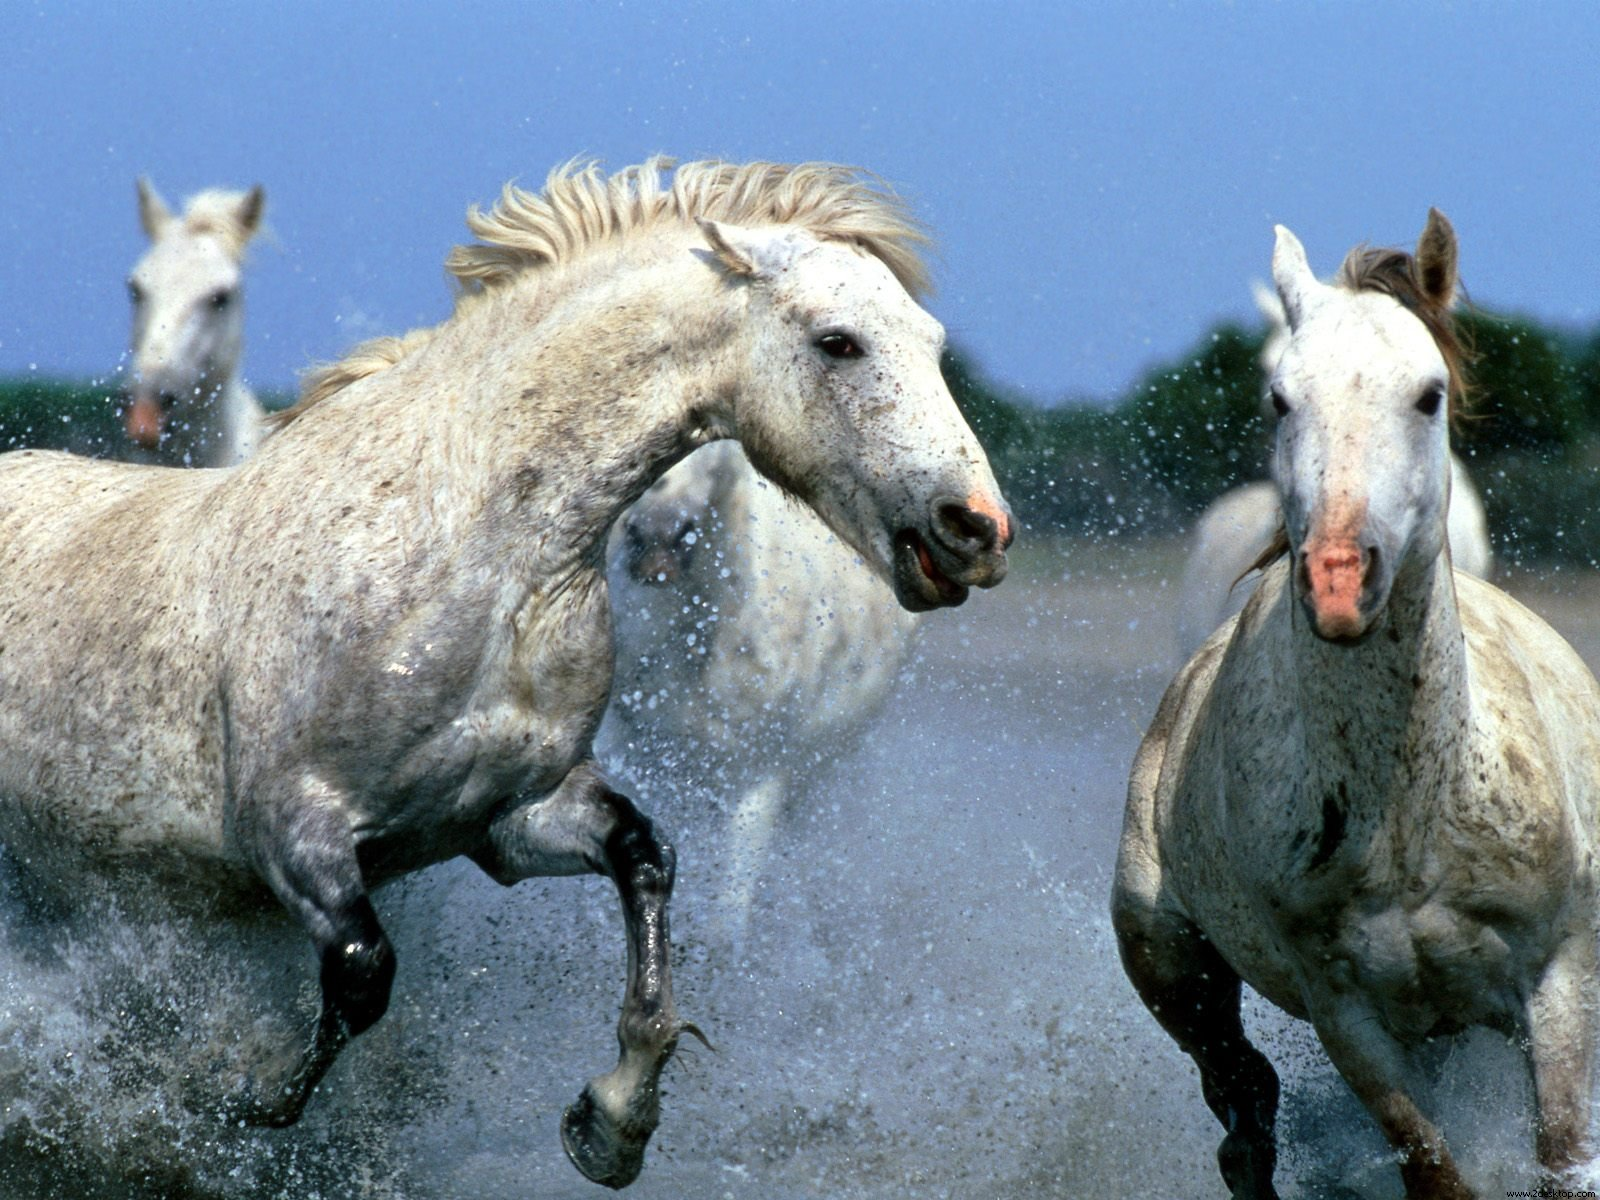 wild horses racing wallpaper - photo #37